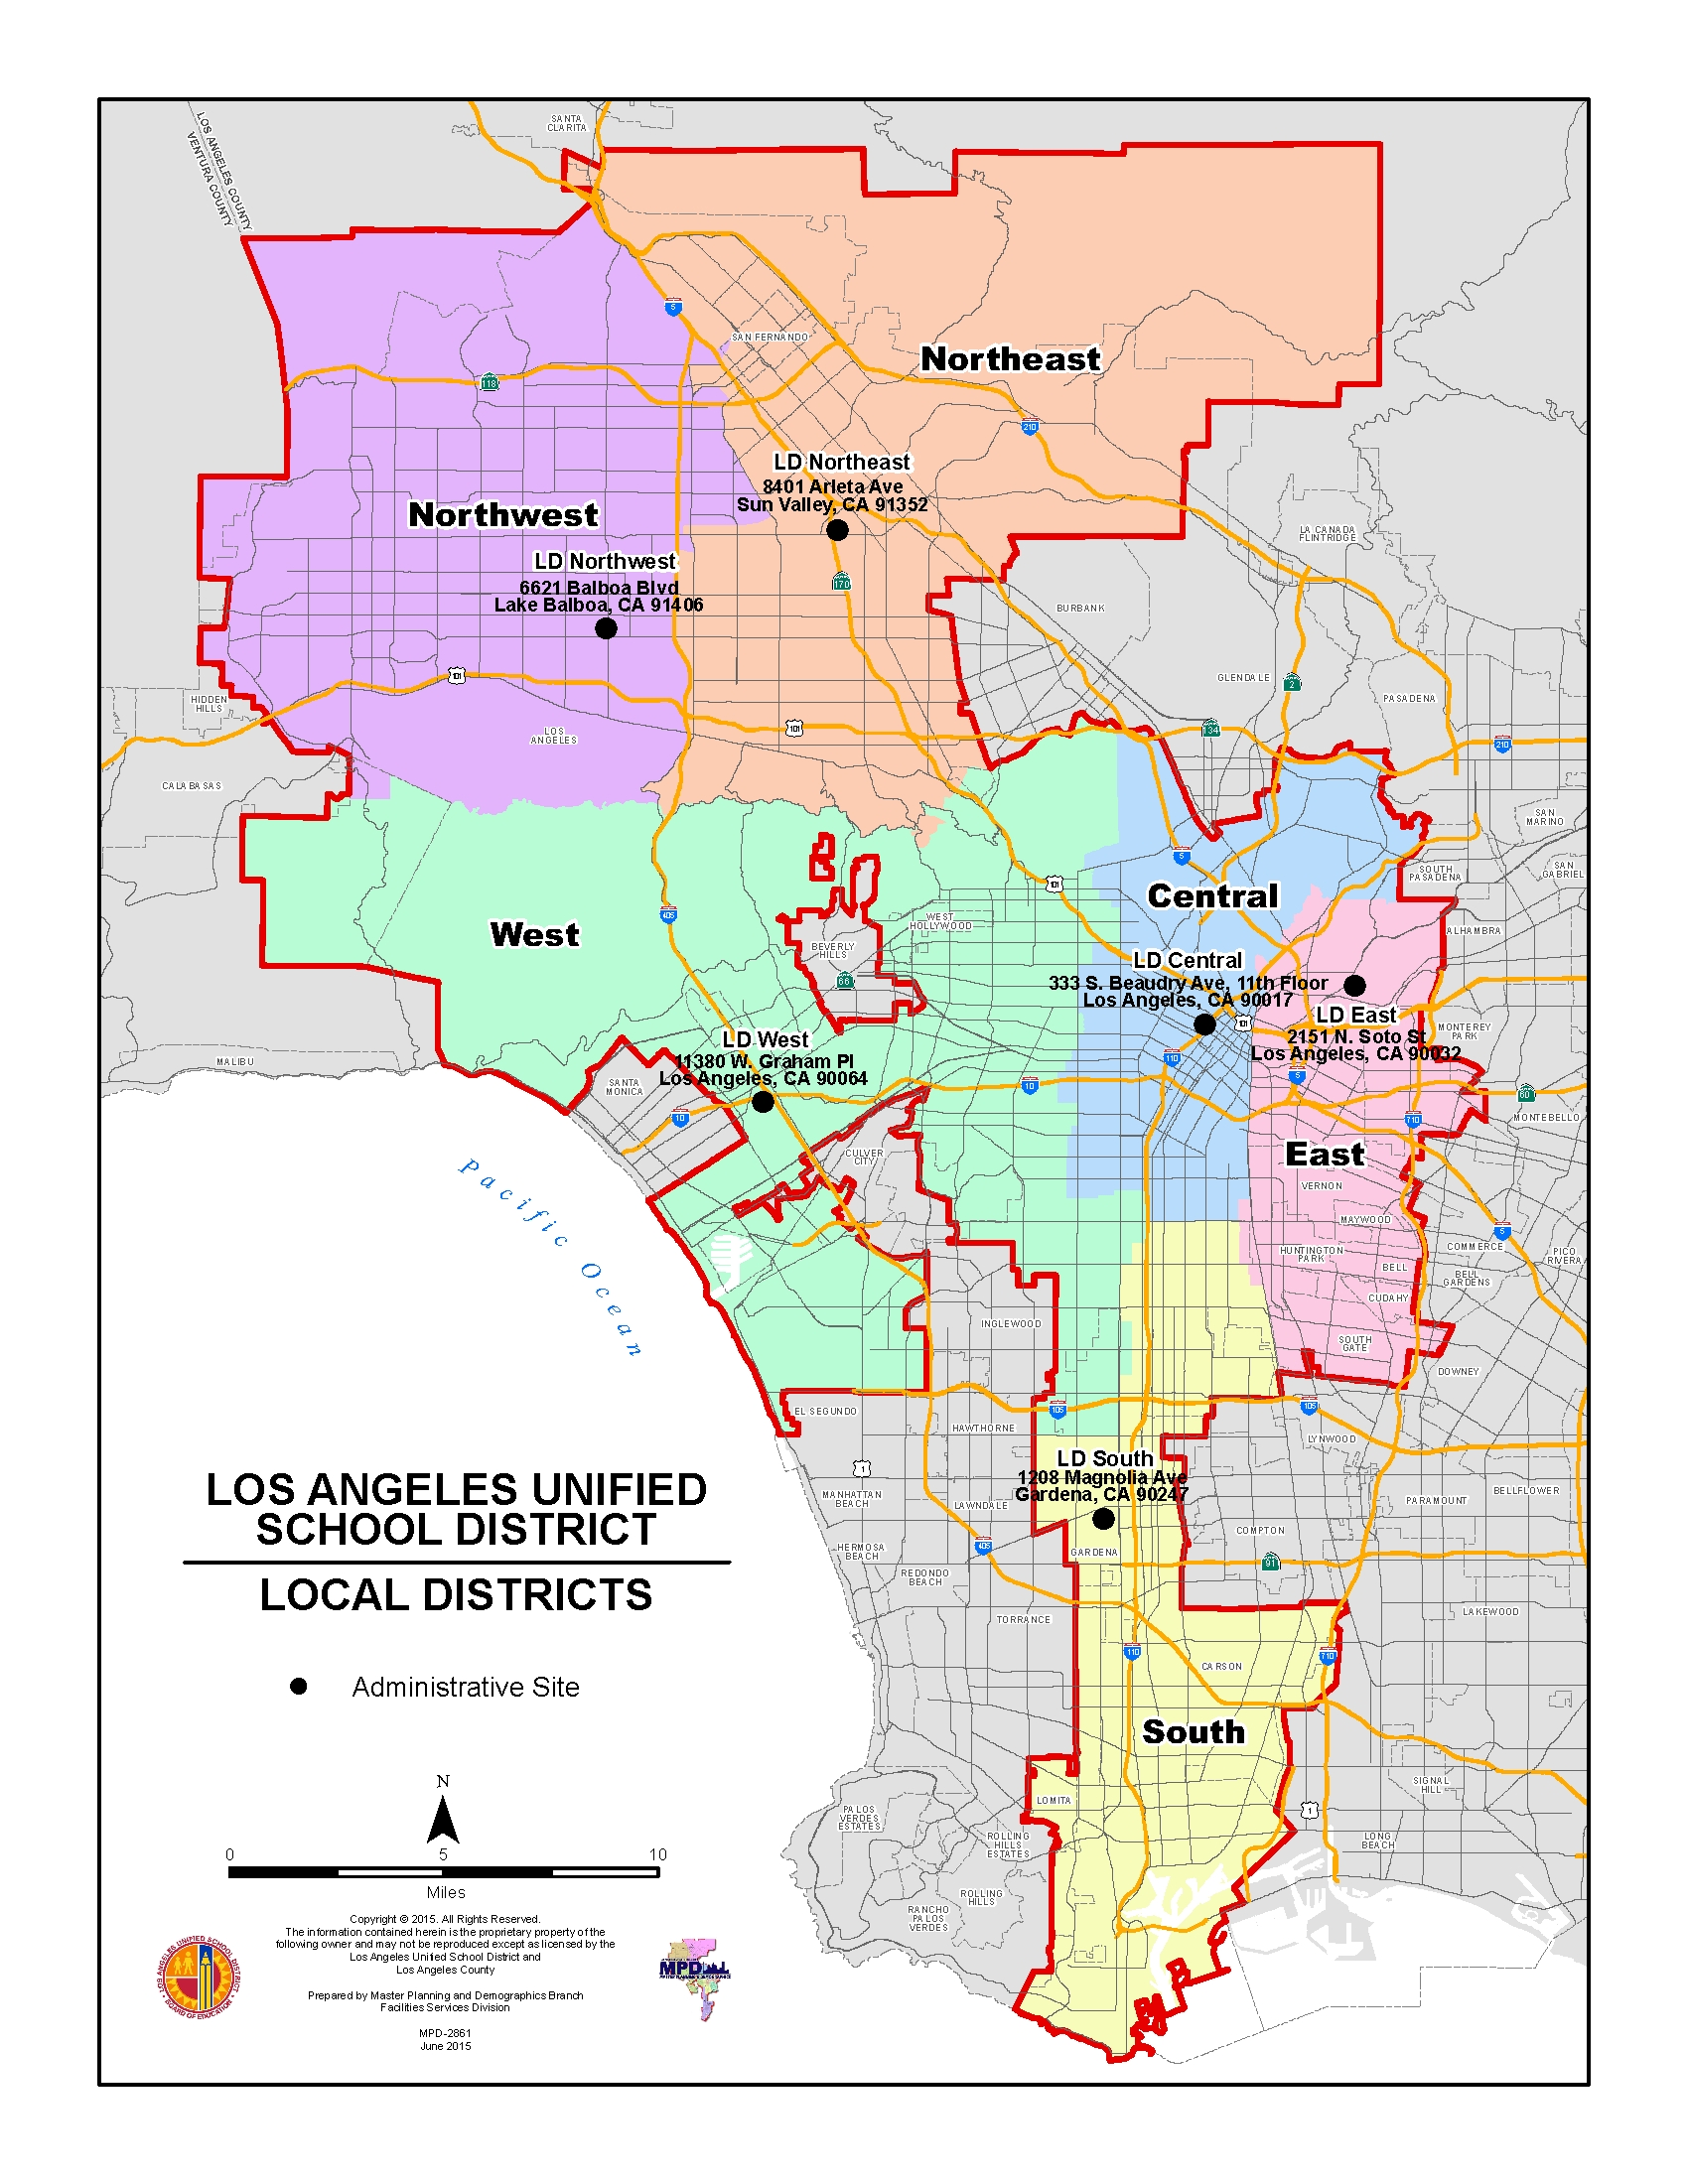 Lausd Maps / Local District Maps 2015 - 2016 with Los Angeles School District Boundaries